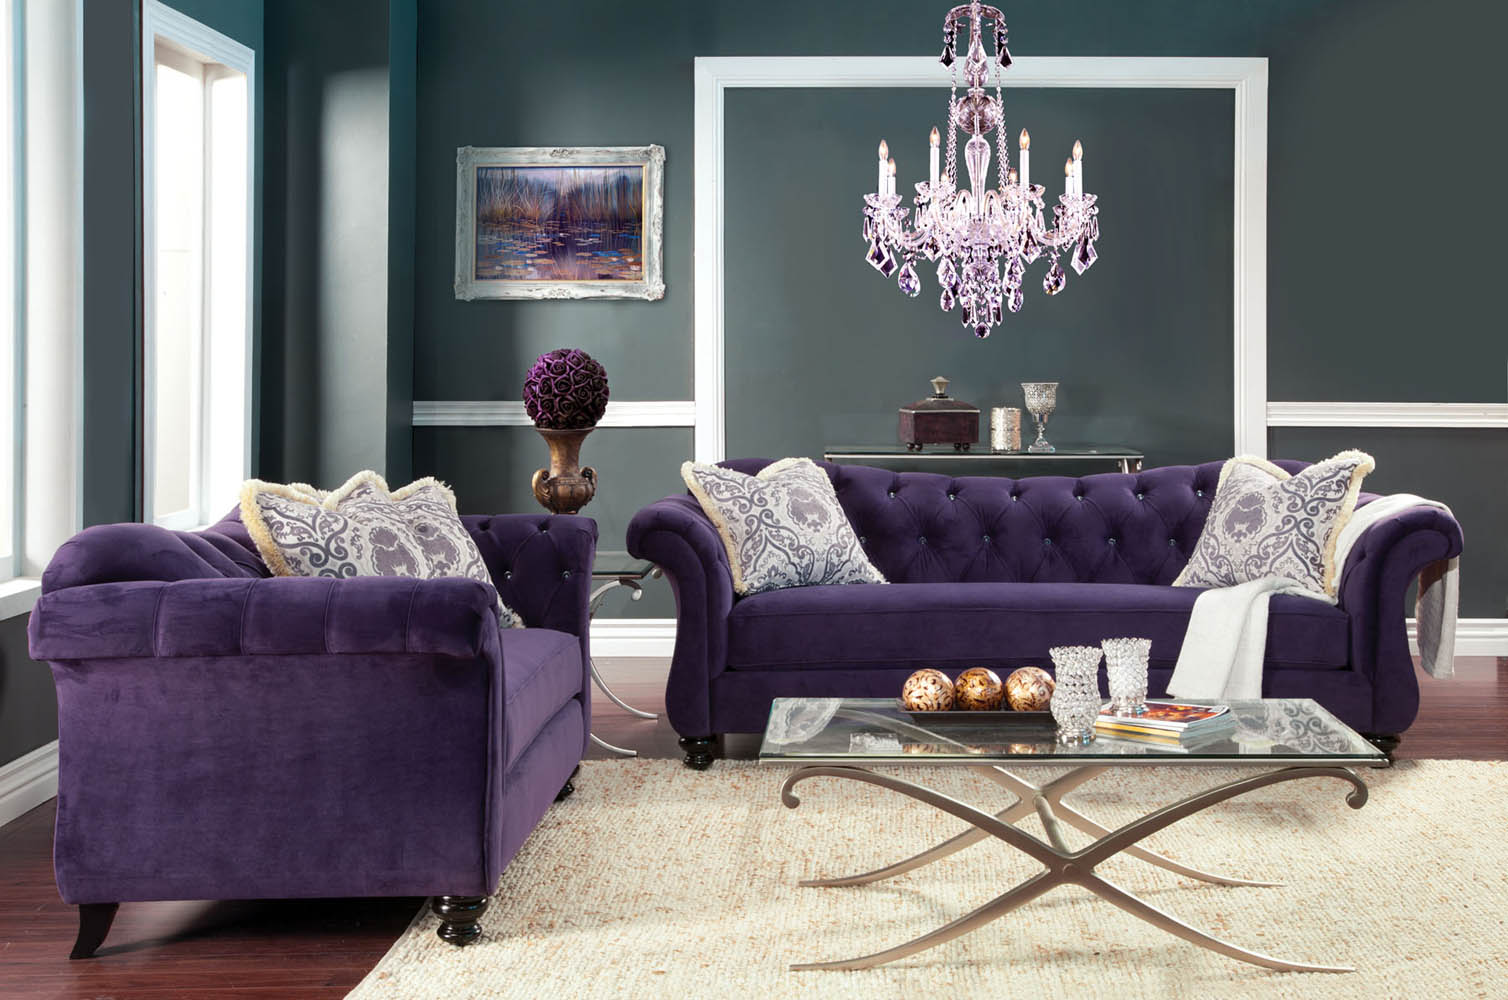 2 Pcs Traditional Sofa Set - Button Tuffted - Purple, Navy, Black or Charcoal